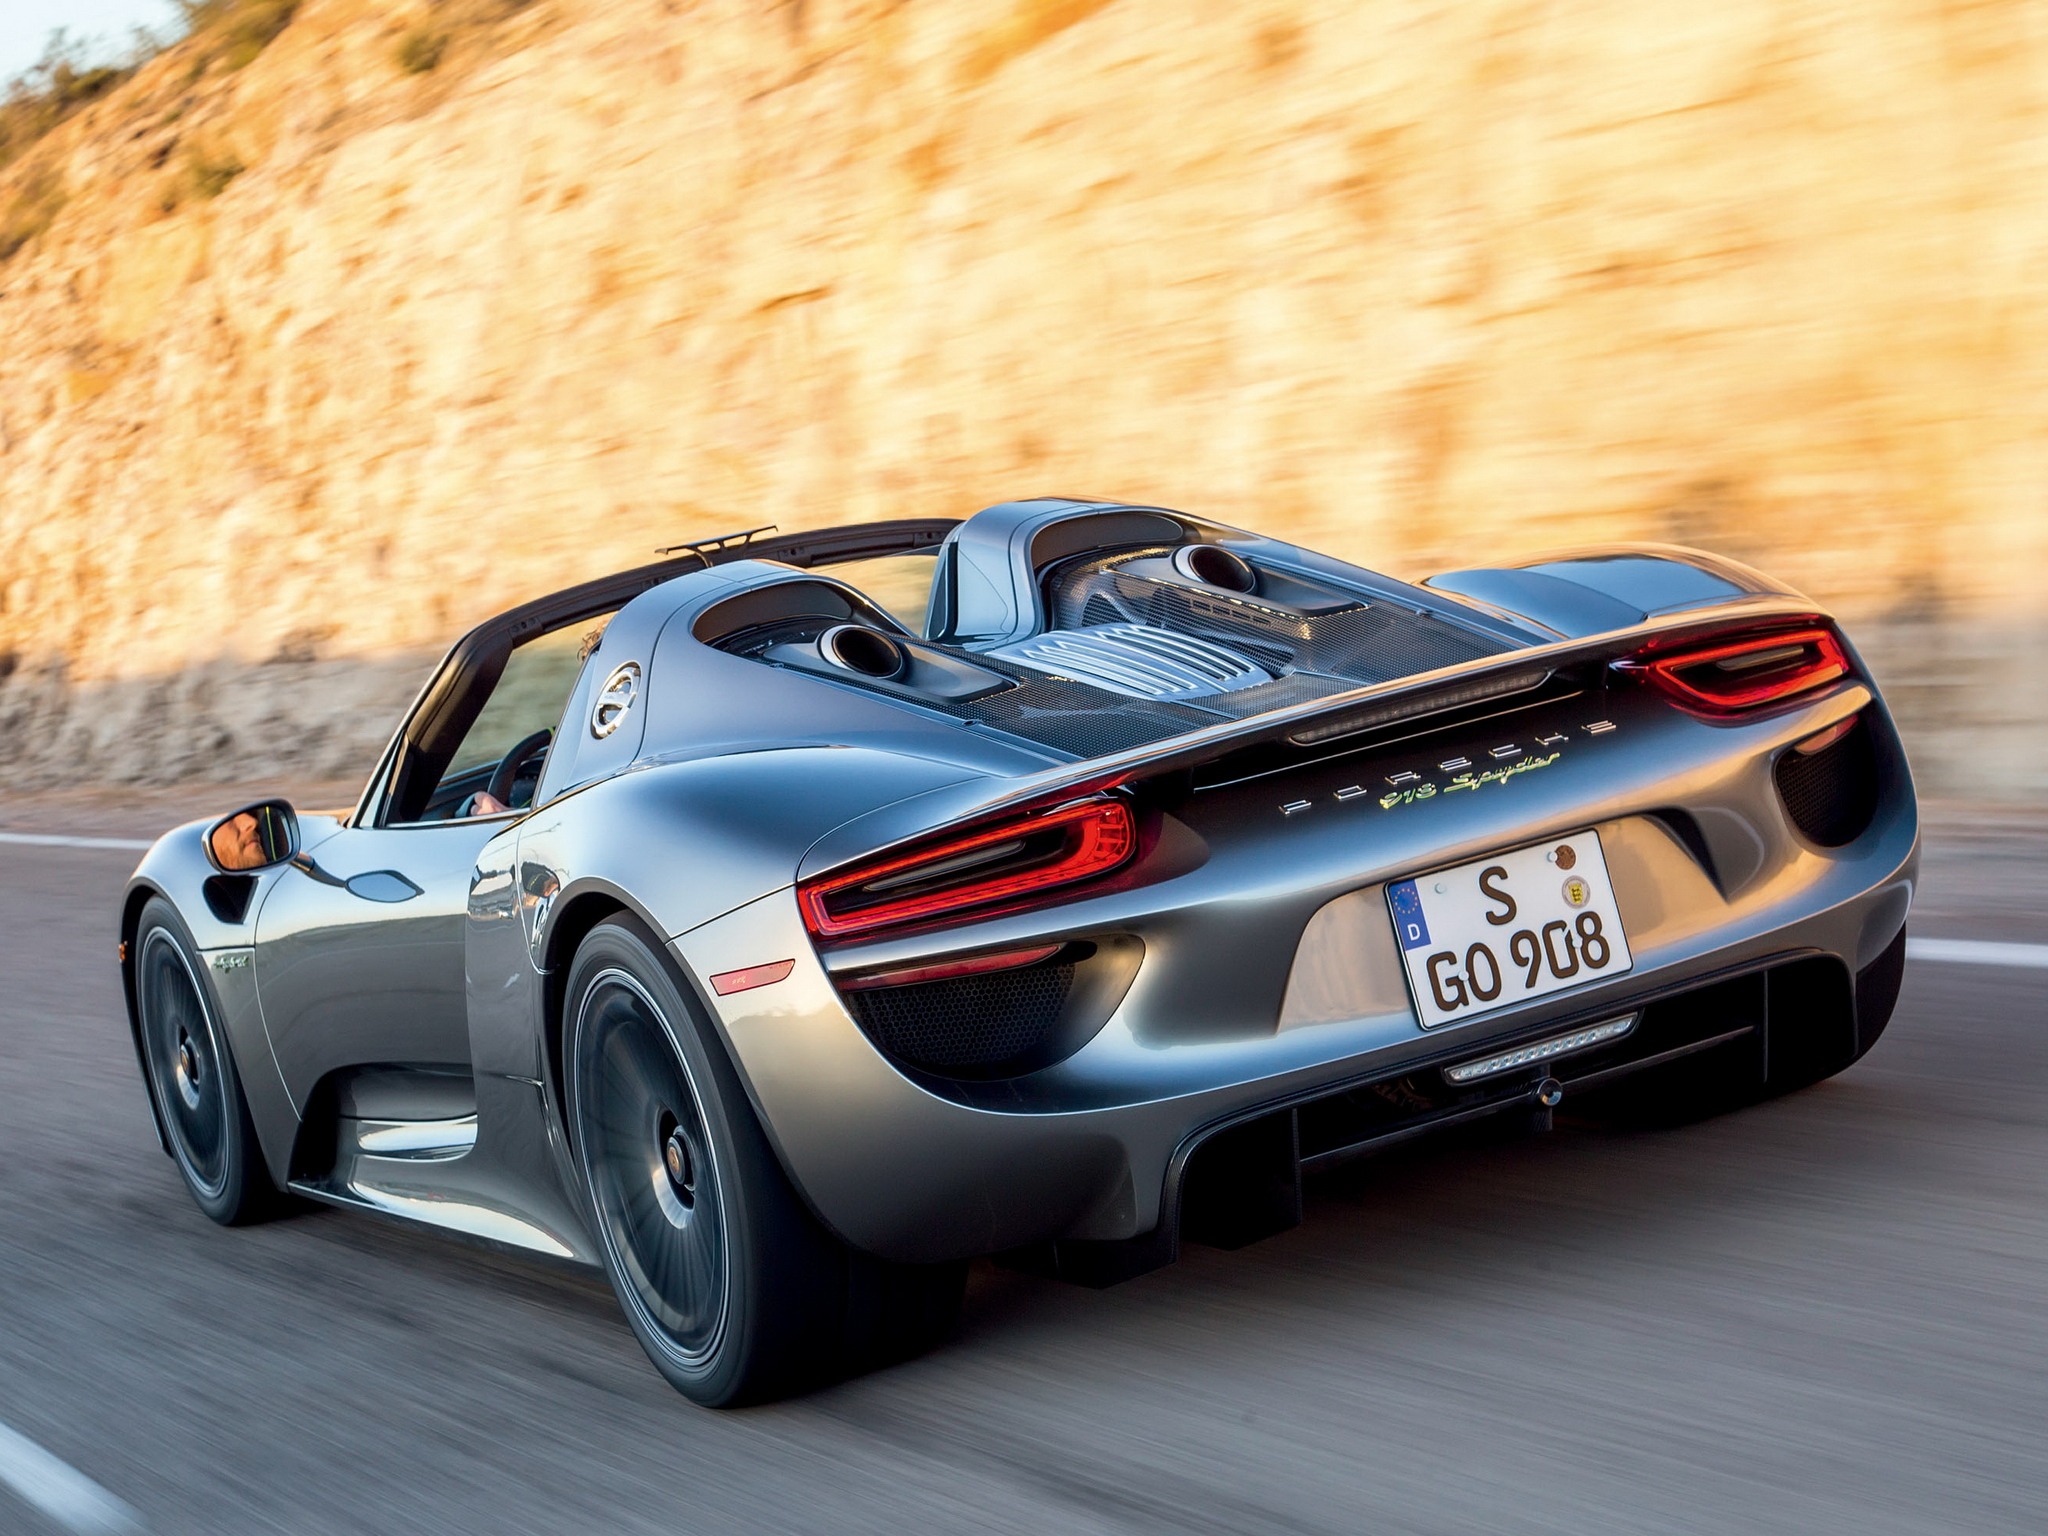 2014 porsche 918 spyder us spec g wallpaper 2048x1536 197990 wallpaperup. Black Bedroom Furniture Sets. Home Design Ideas